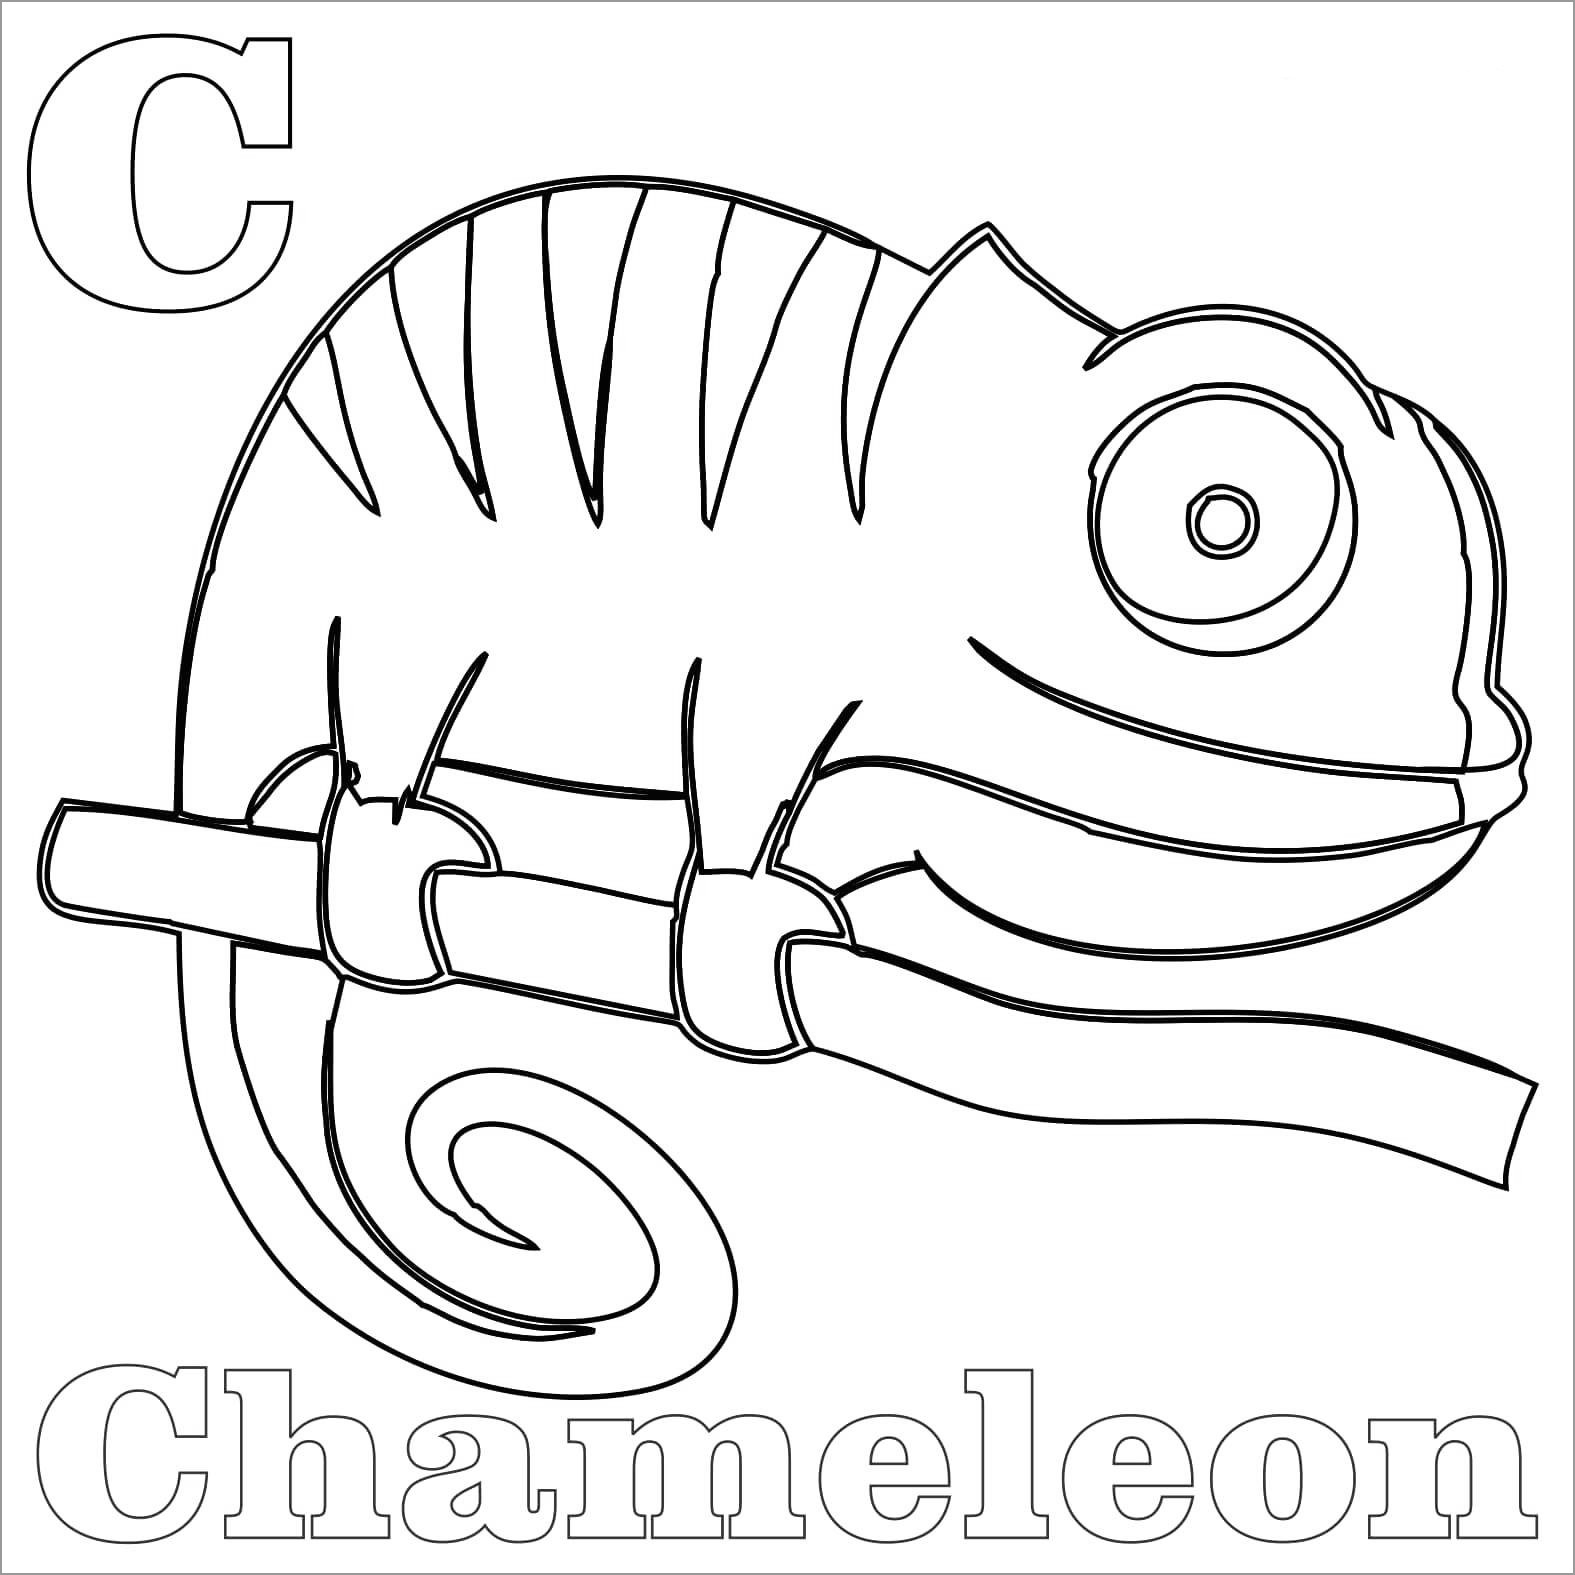 Chameleon Coloring Pages - Best Coloring Pages For Kids